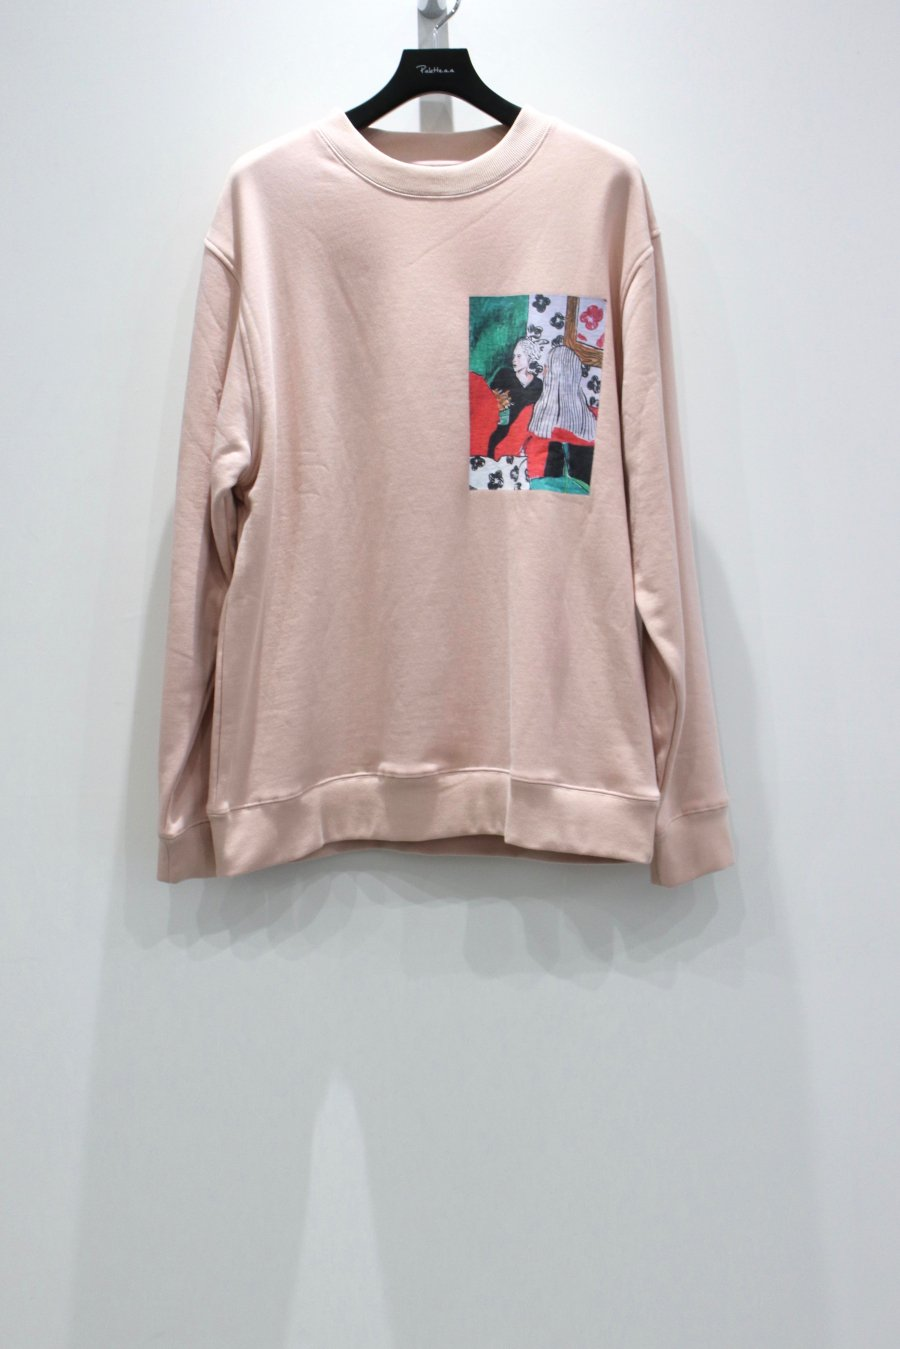 VICTORIA  TWO LADIES CREWNECK(PEACH)<img class='new_mark_img2' src='https://img.shop-pro.jp/img/new/icons15.gif' style='border:none;display:inline;margin:0px;padding:0px;width:auto;' />